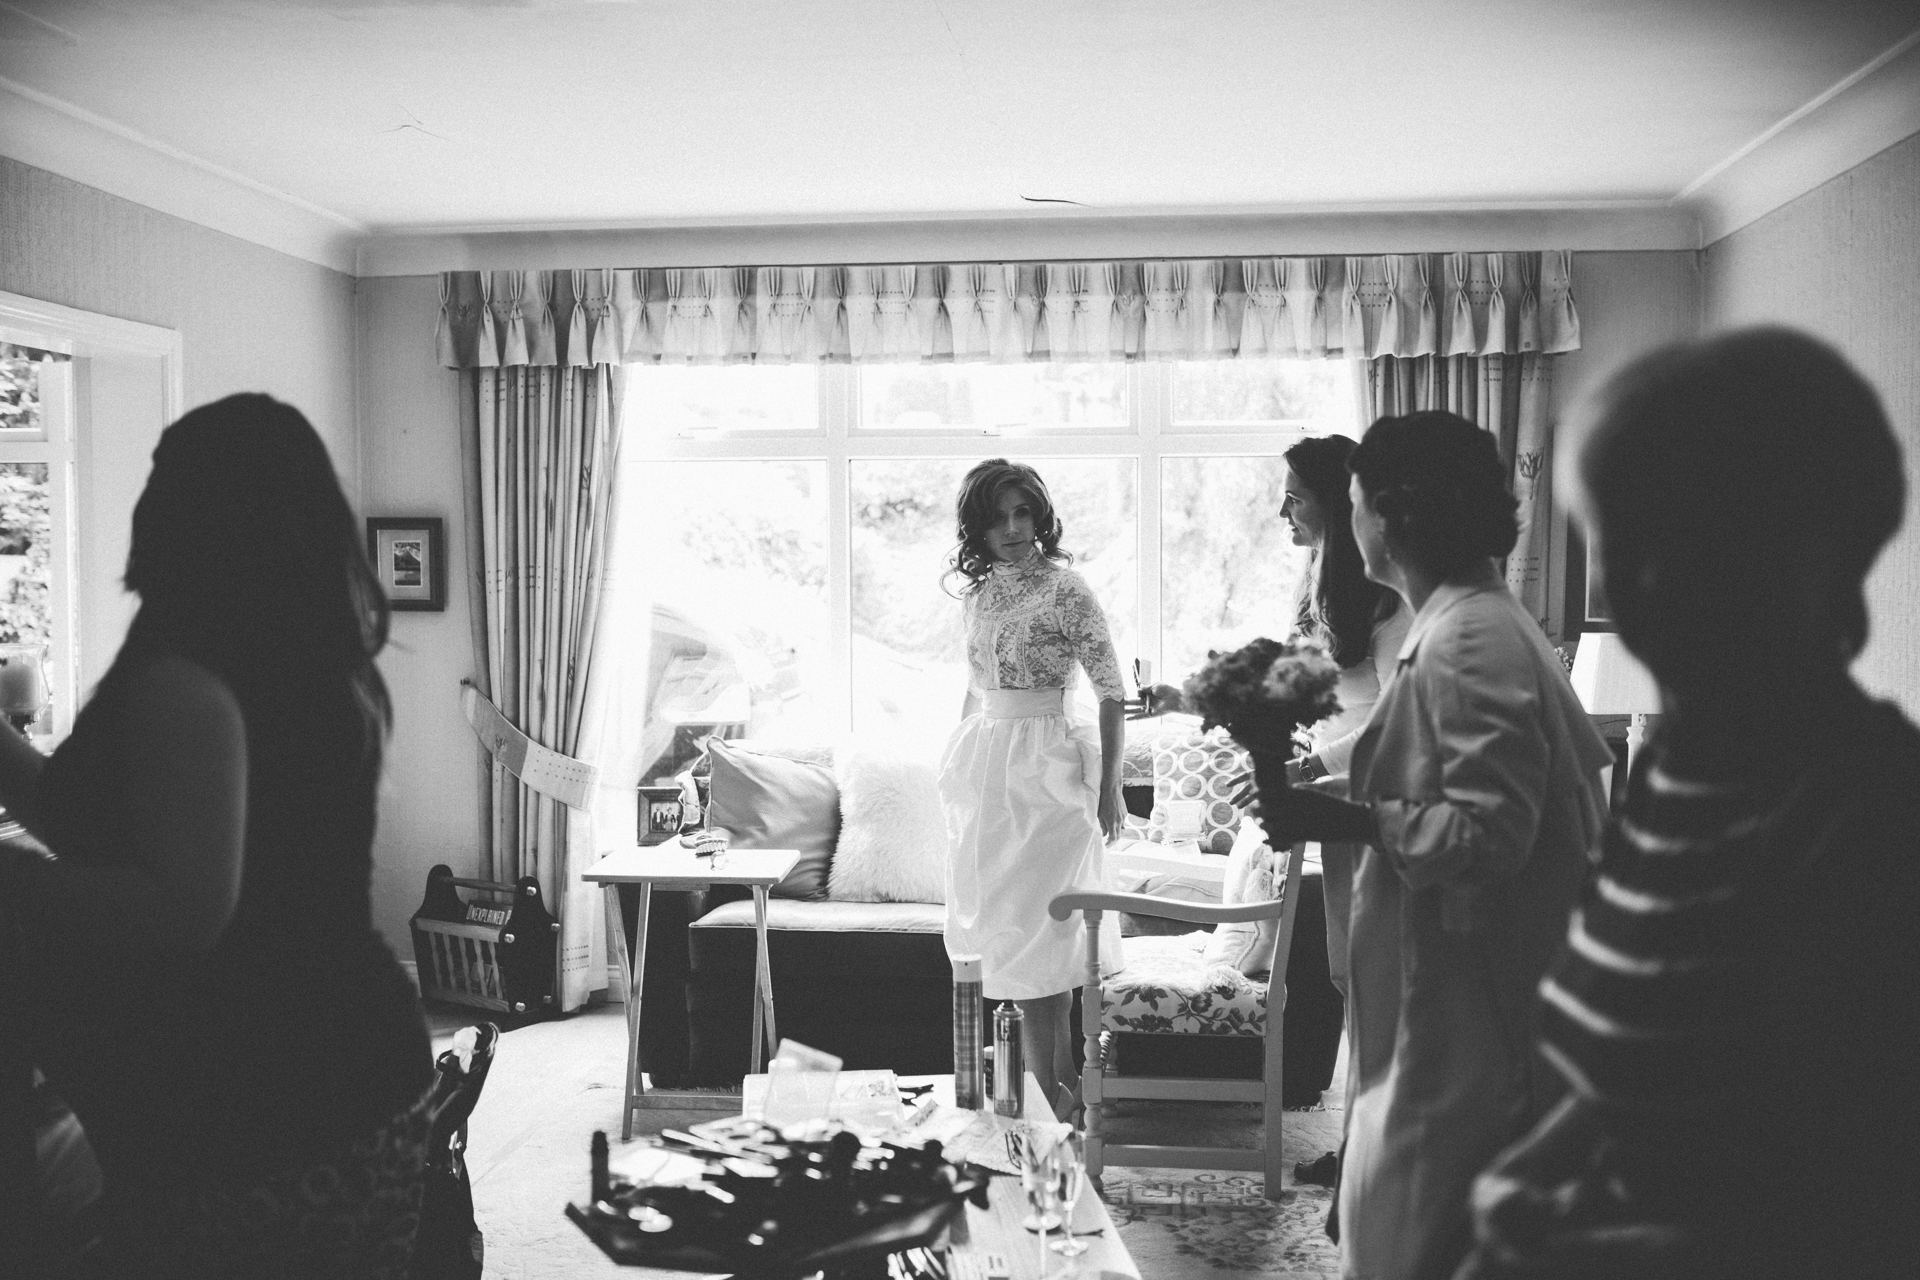 Dublin Wedding Photographer Graciela Vilagudin 00146.jpg